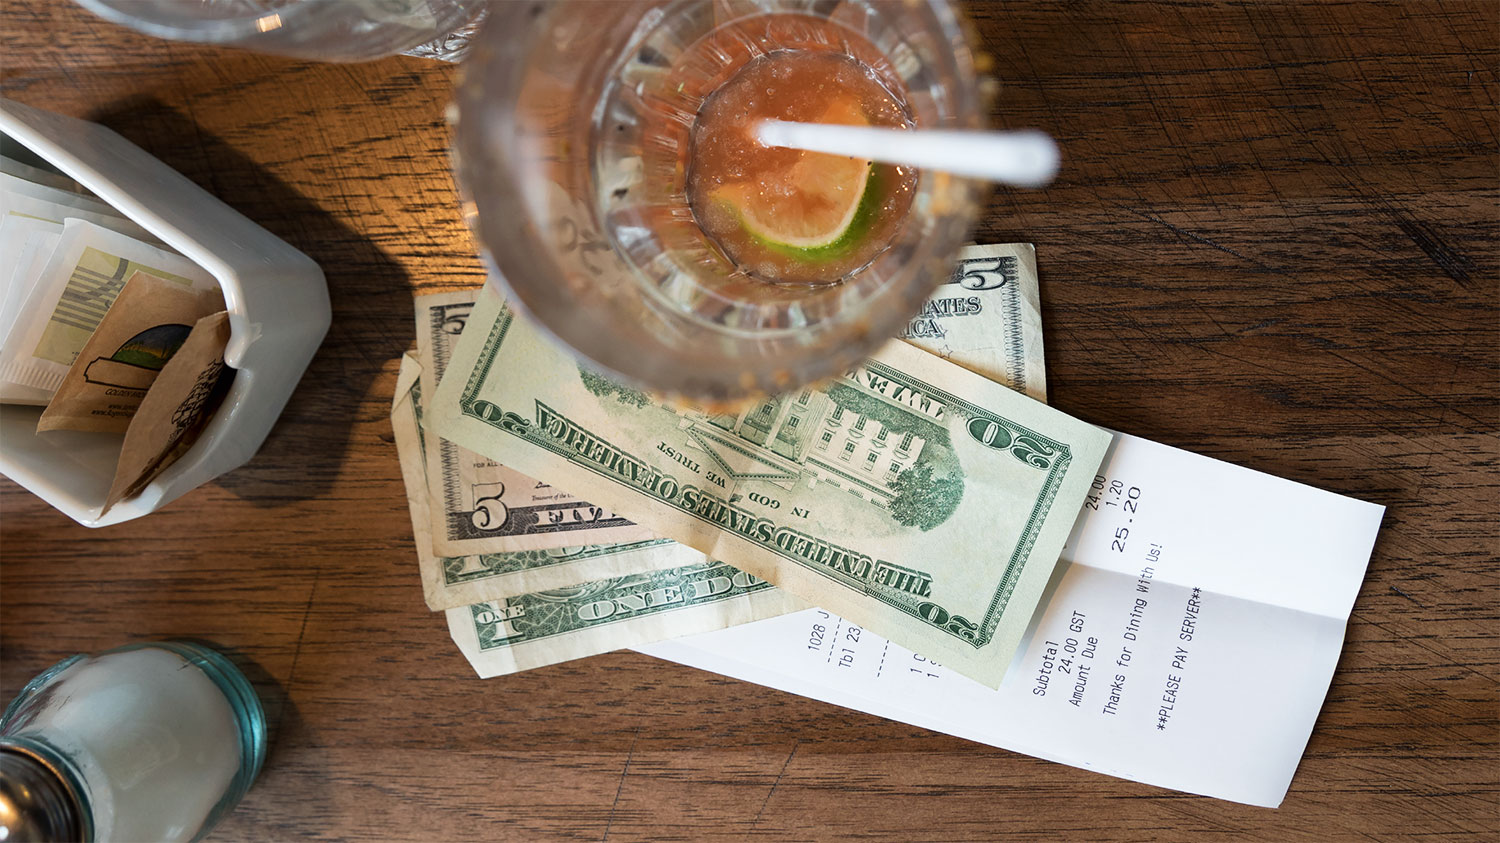 Congress Introduces Legislation to Ensure Restaurants Can't Take Servers' Tip Money